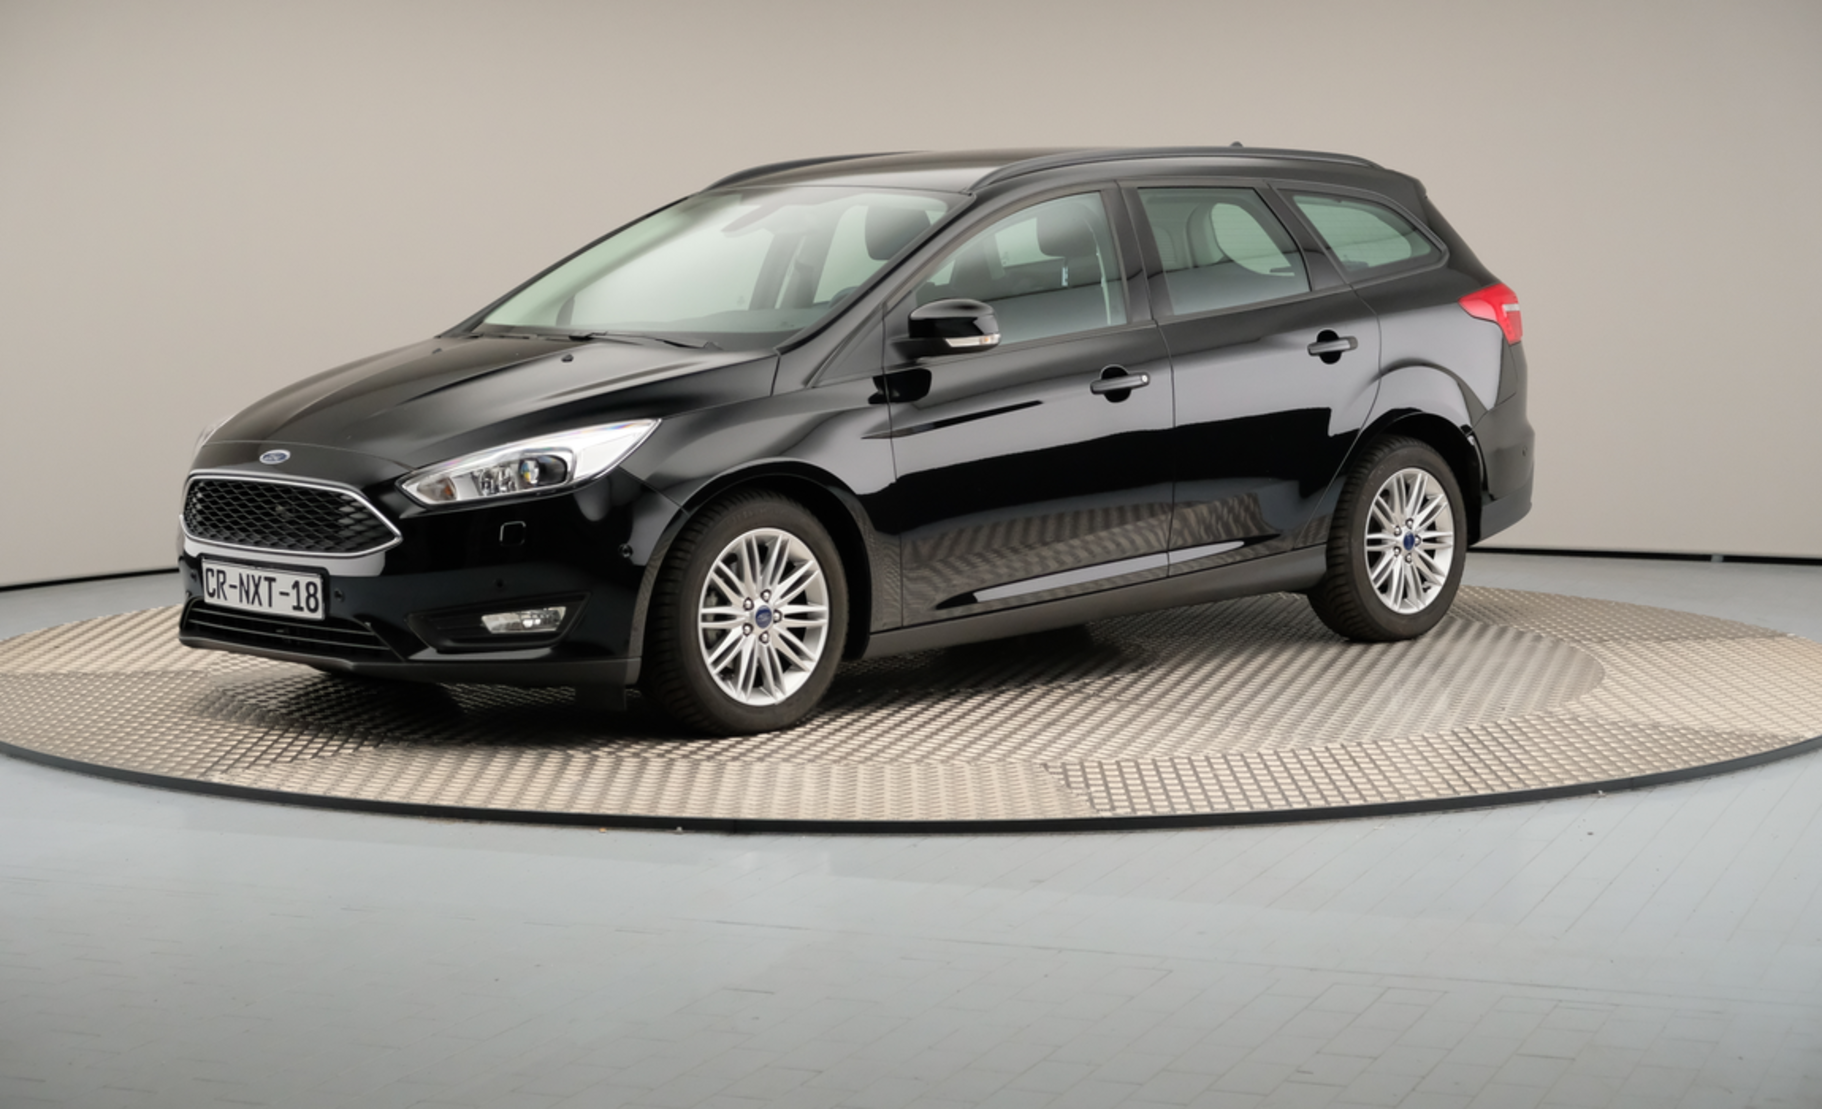 Ford Focus Turnier 1.5 TDCi DPF Start-Stopp-System Business (688848) detail1